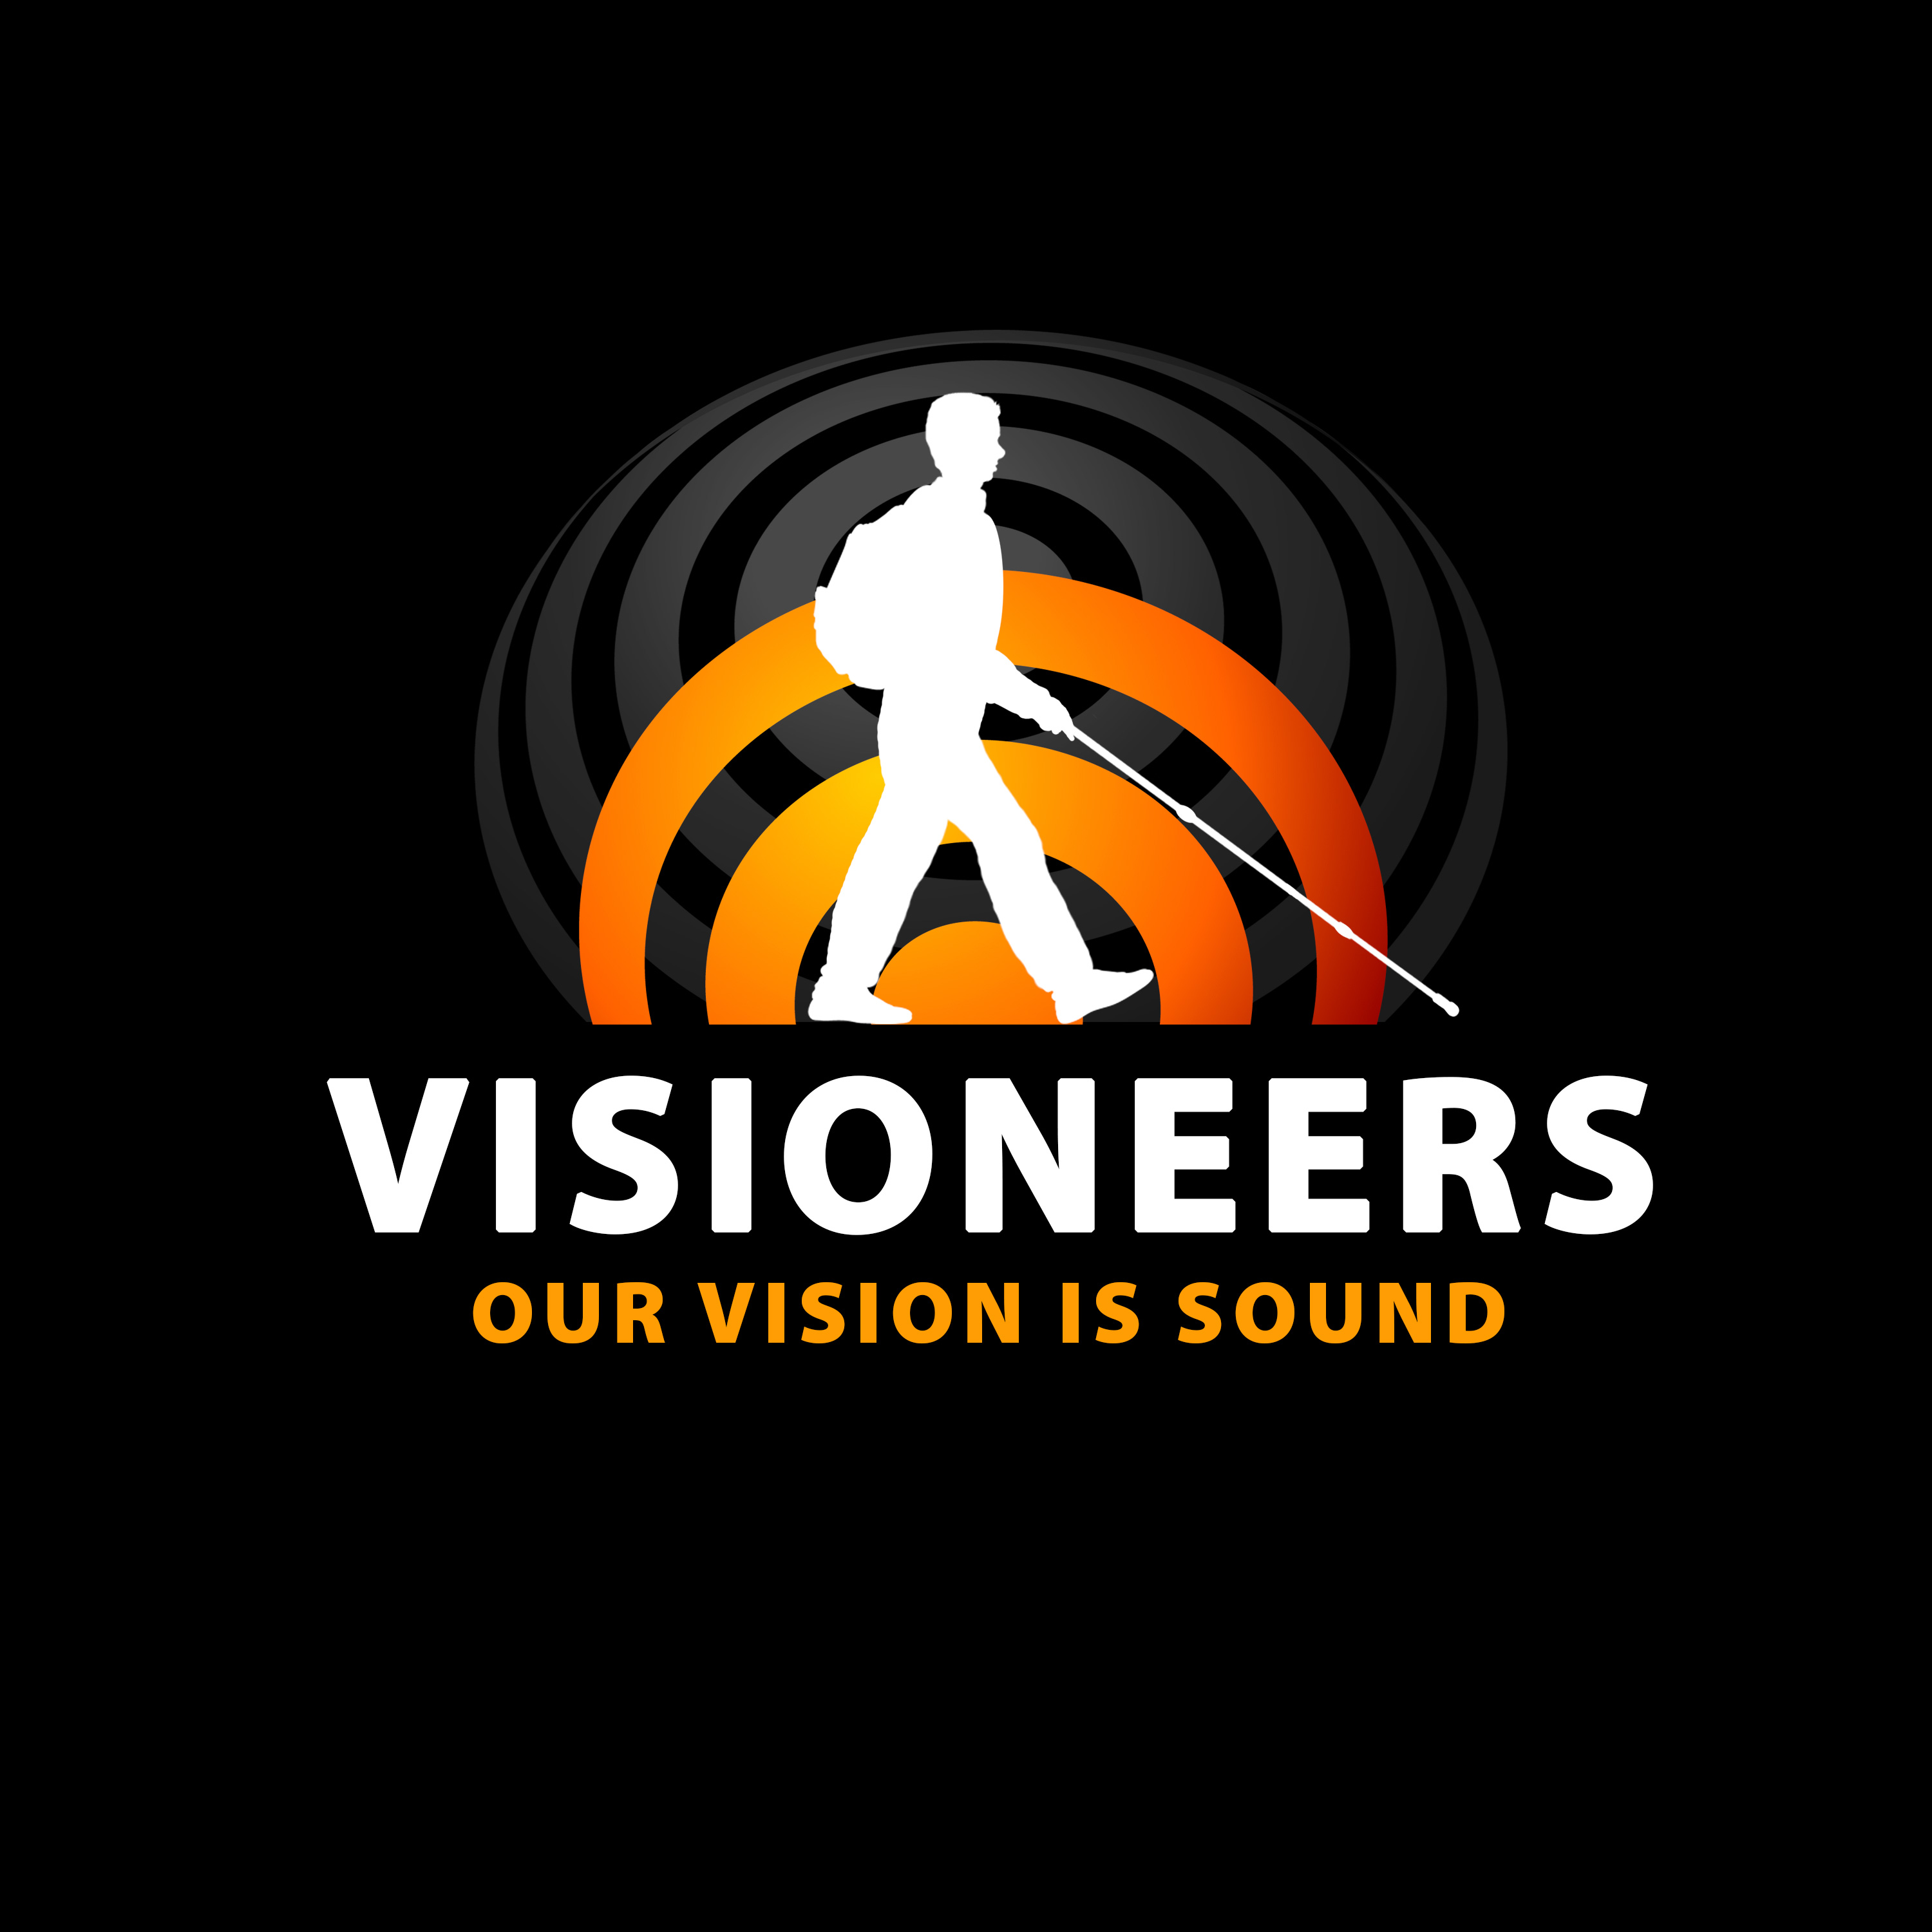 Visioneers 18b. Same as previous panel with blue elements replaced by gradient orange.